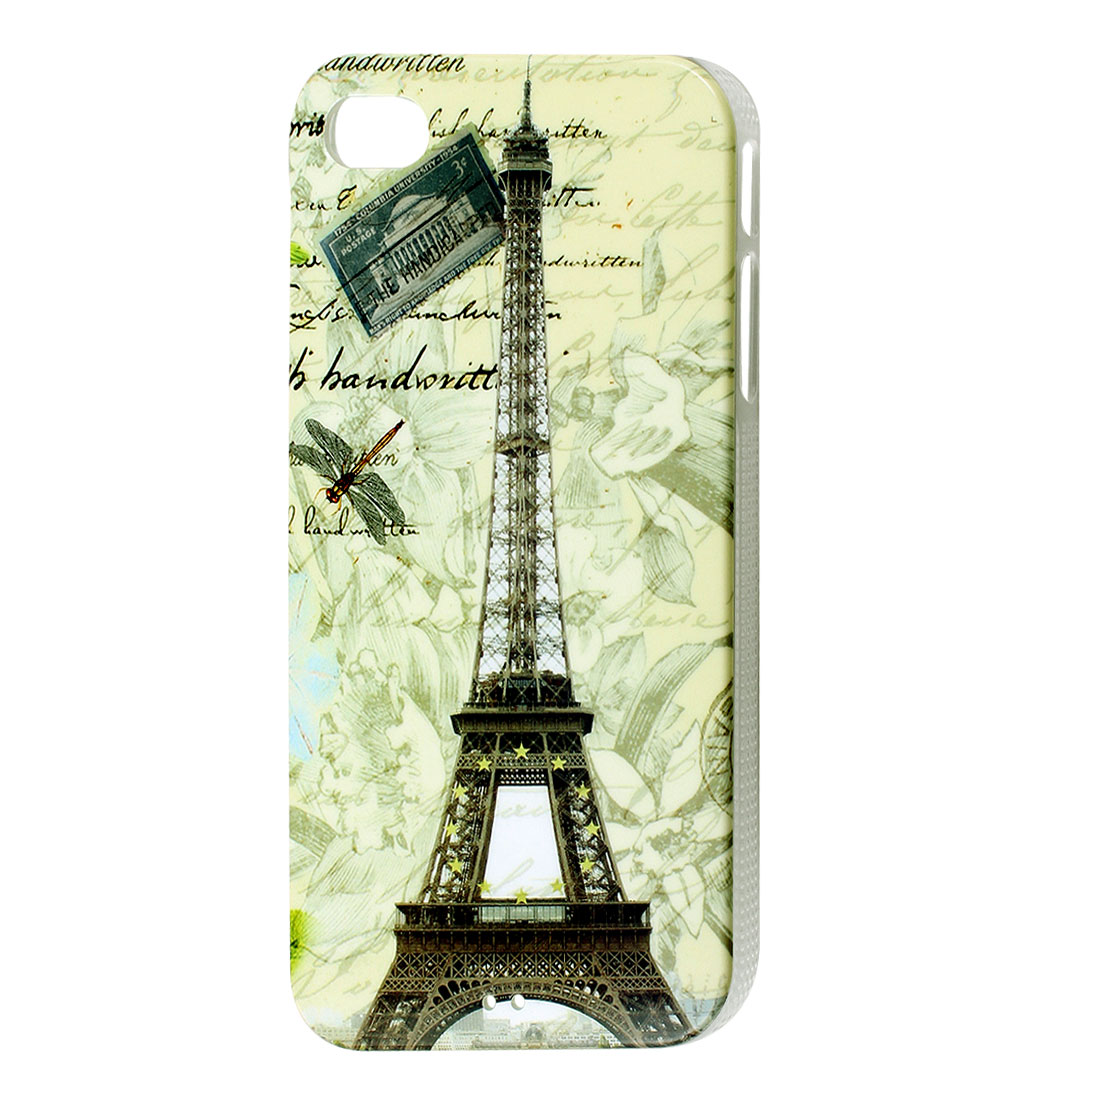 Dragonfly & Eiffel Tower Colorful Hard Back Case Cover for iPhone 4 4G 4S 4GS 4th